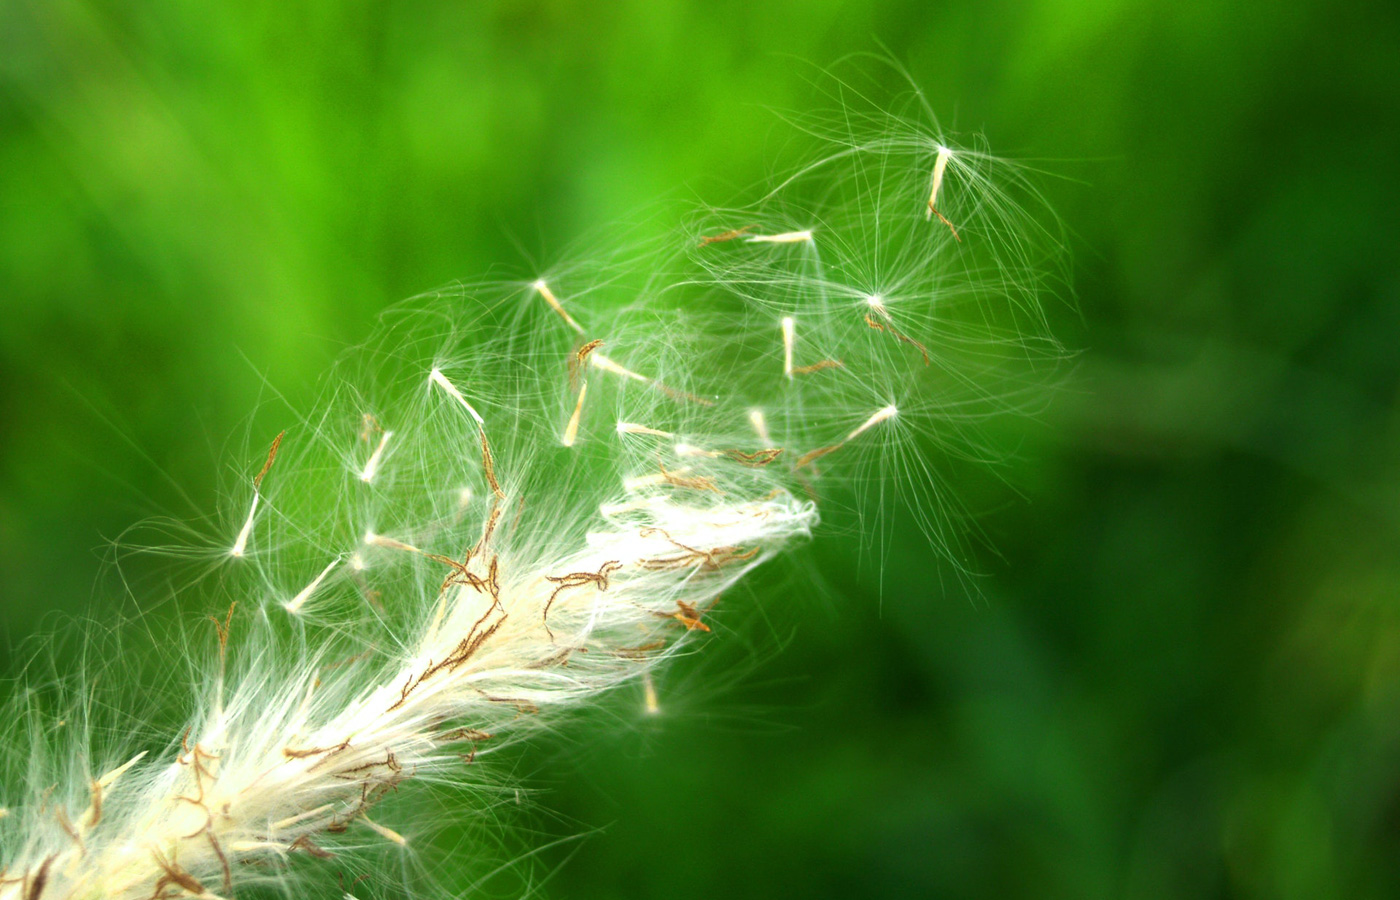 Practicing Gentleness in a World of Hostility